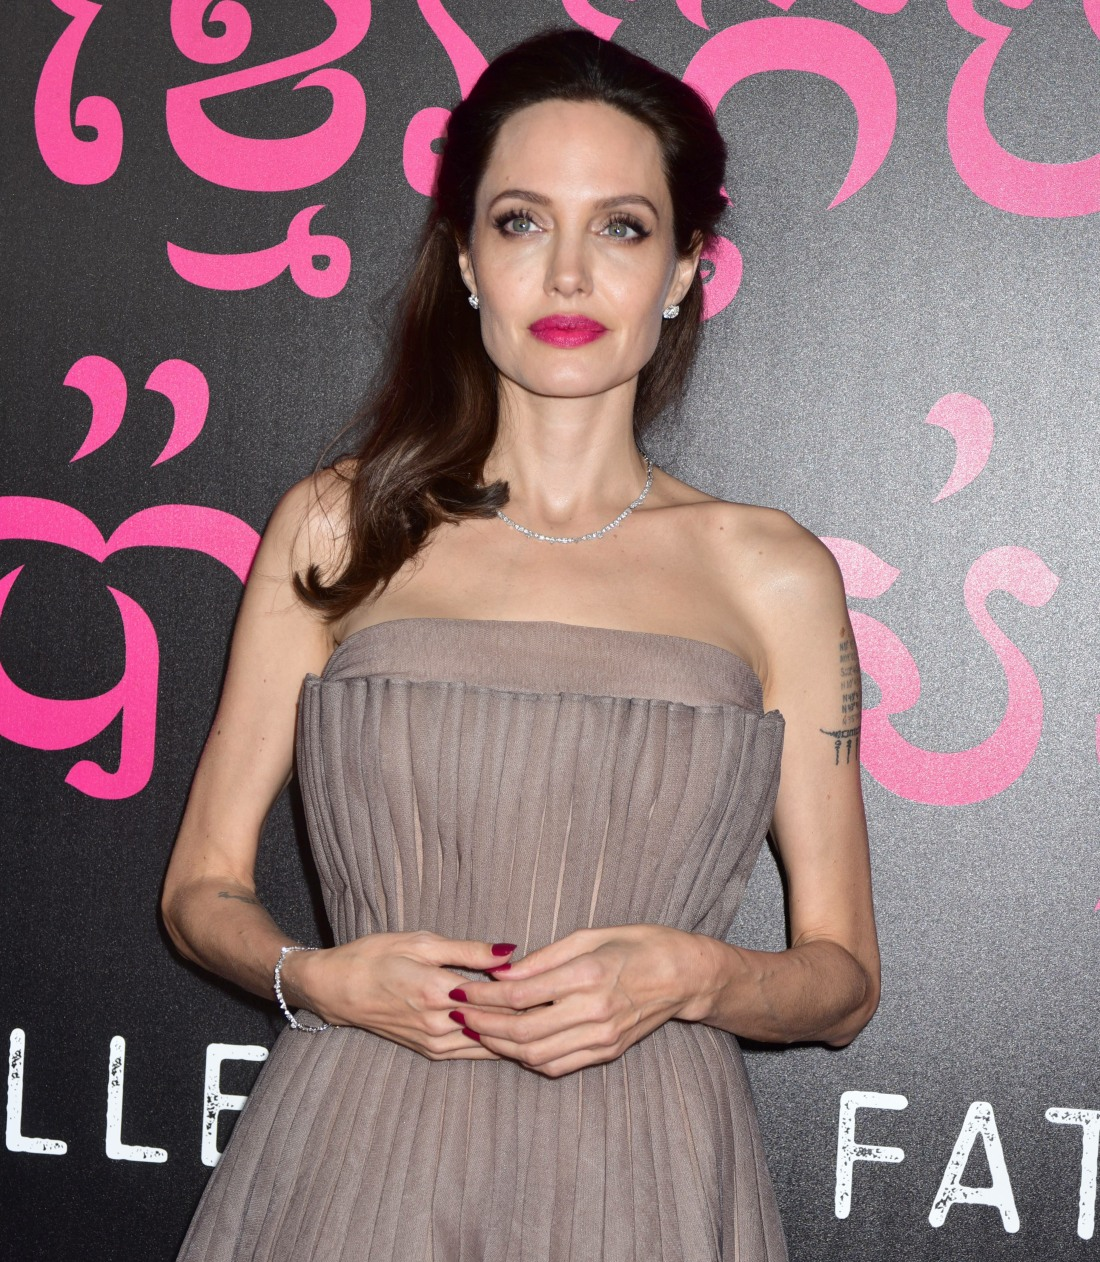 Angelina Jolie at the First They Killed My Father New York premiere at The DGA Theater